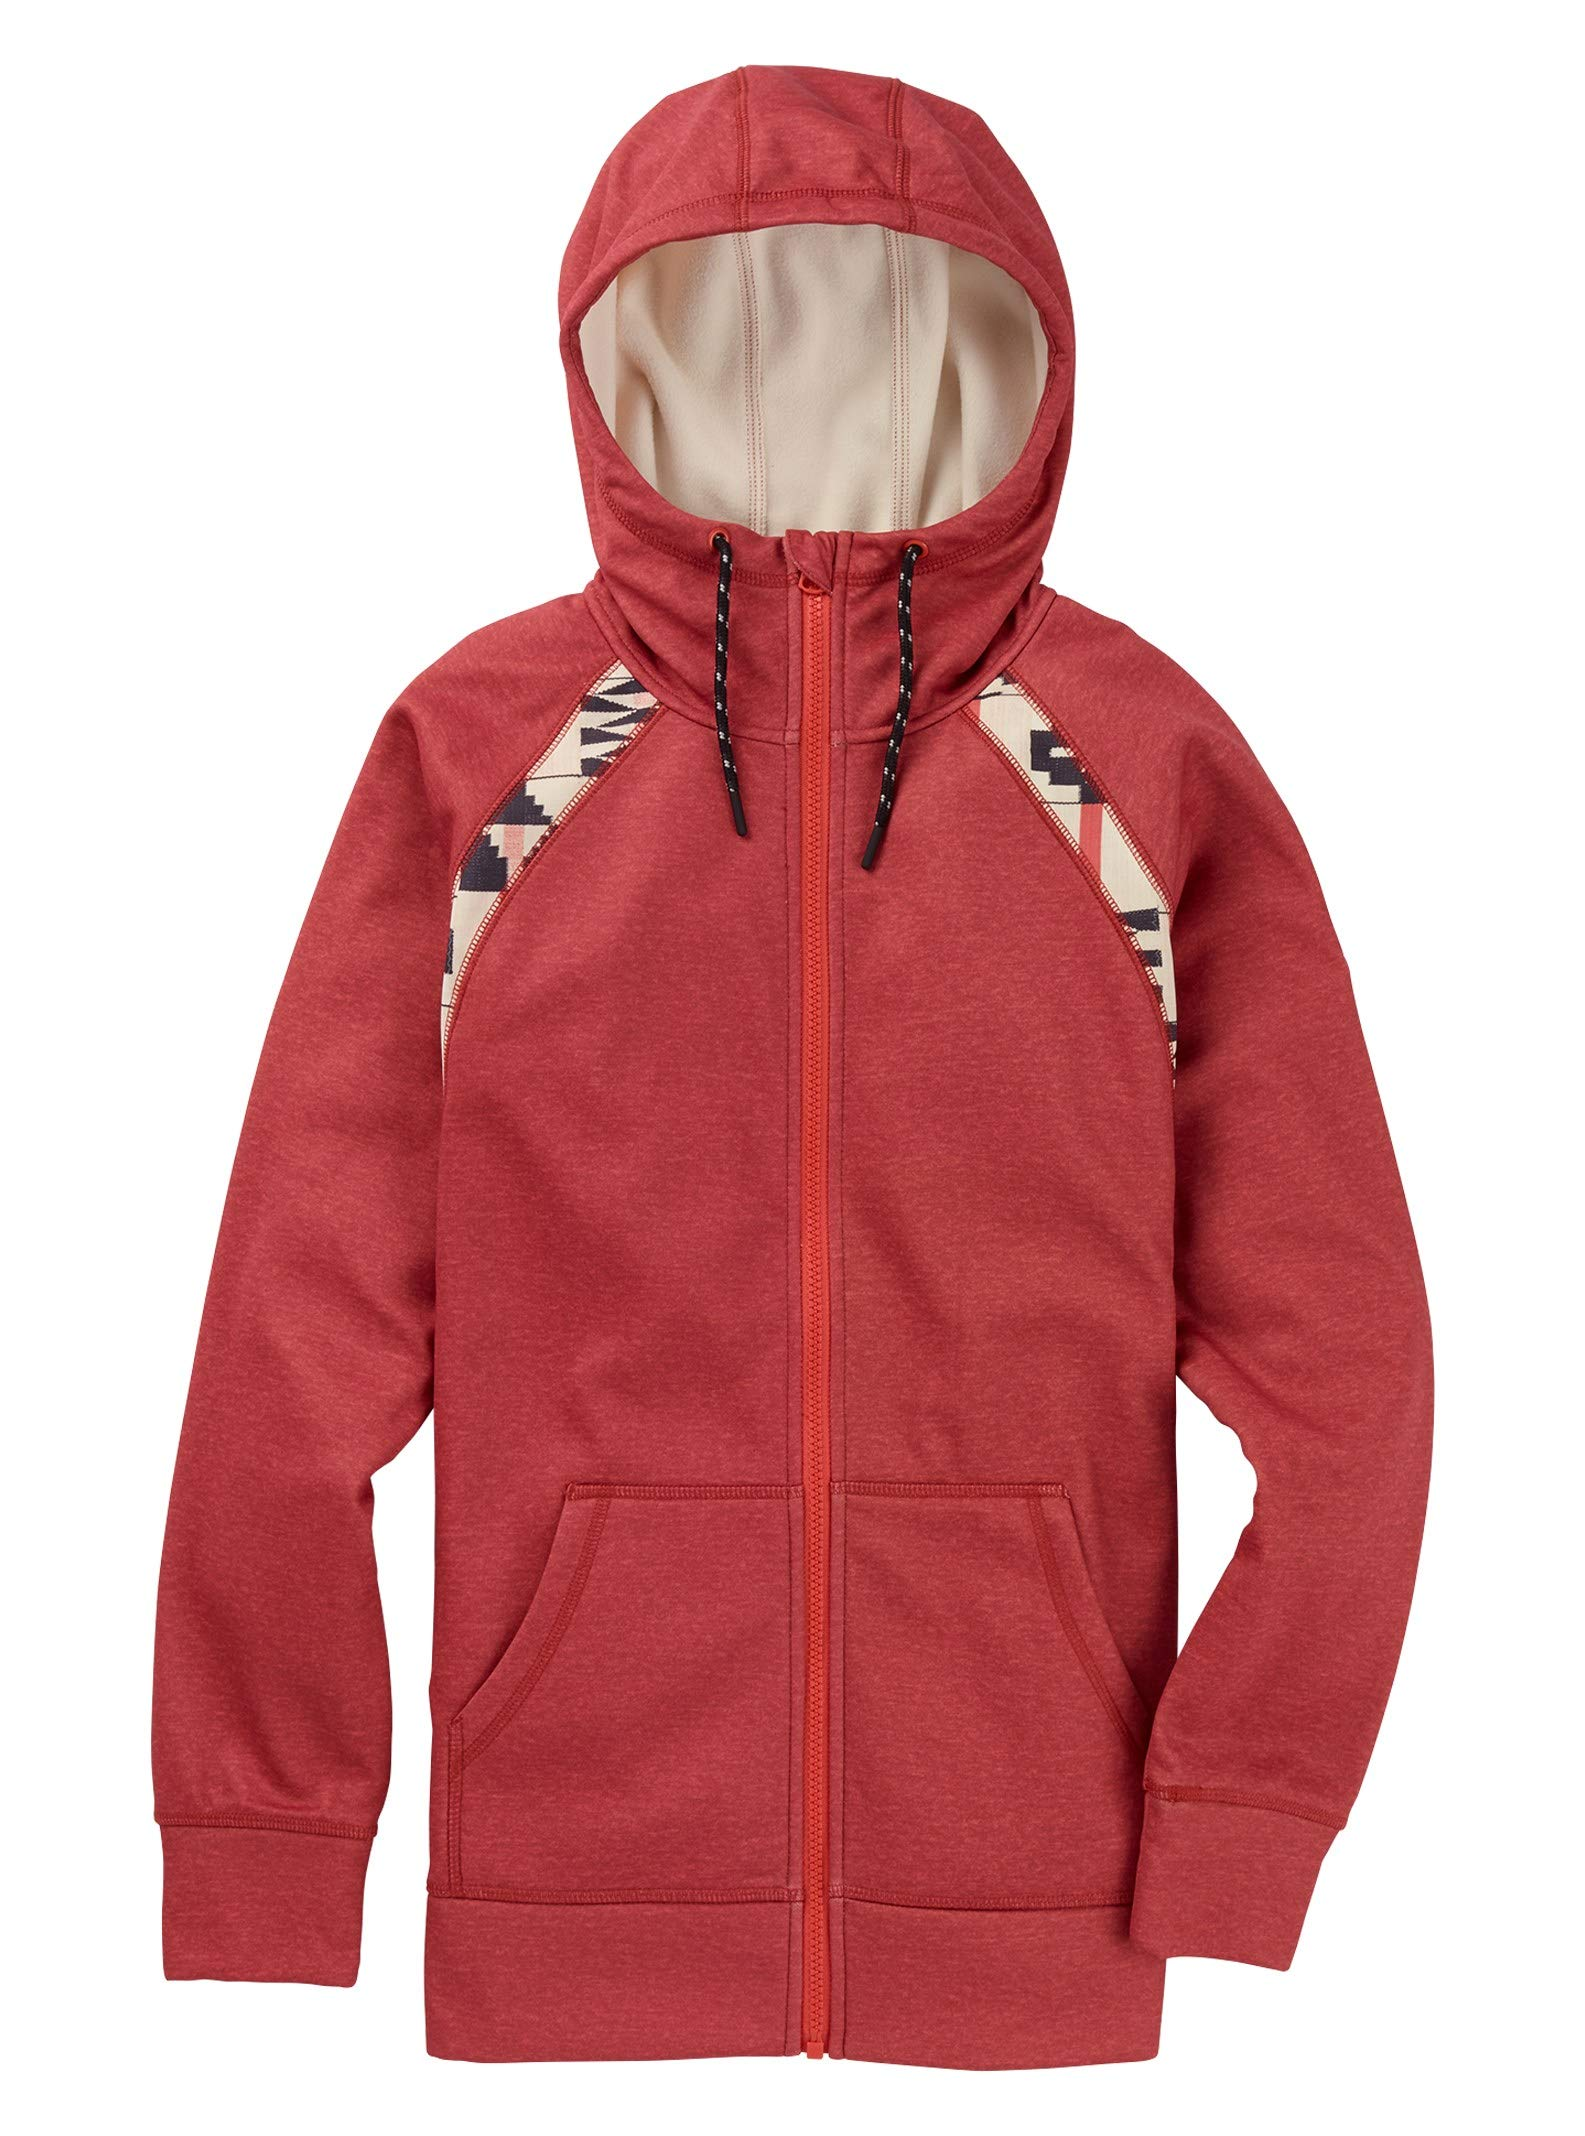 Burton Women's Crown Bonded Full-Zip Hoodie, Burnt Sienna Heather/ Burnt Sienna Brick Stripe, X-Small by Burton